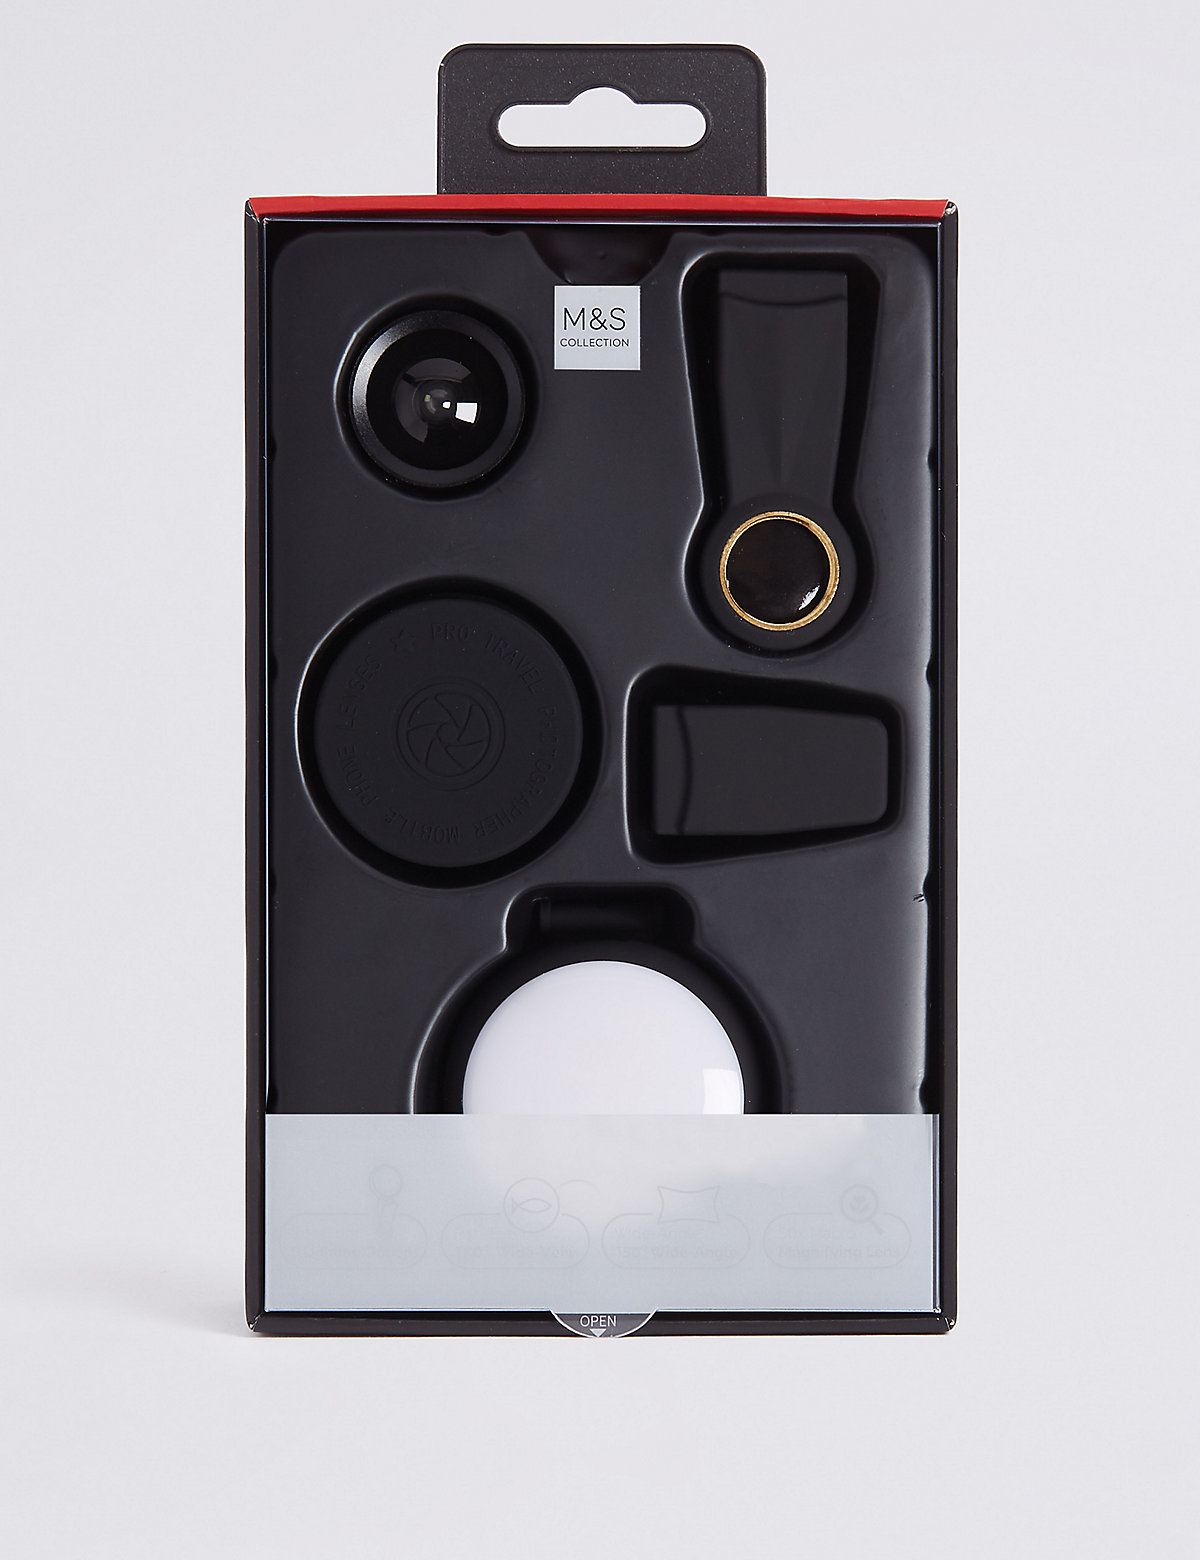 M&S Collection Clip On x3 Lens and Light Kit